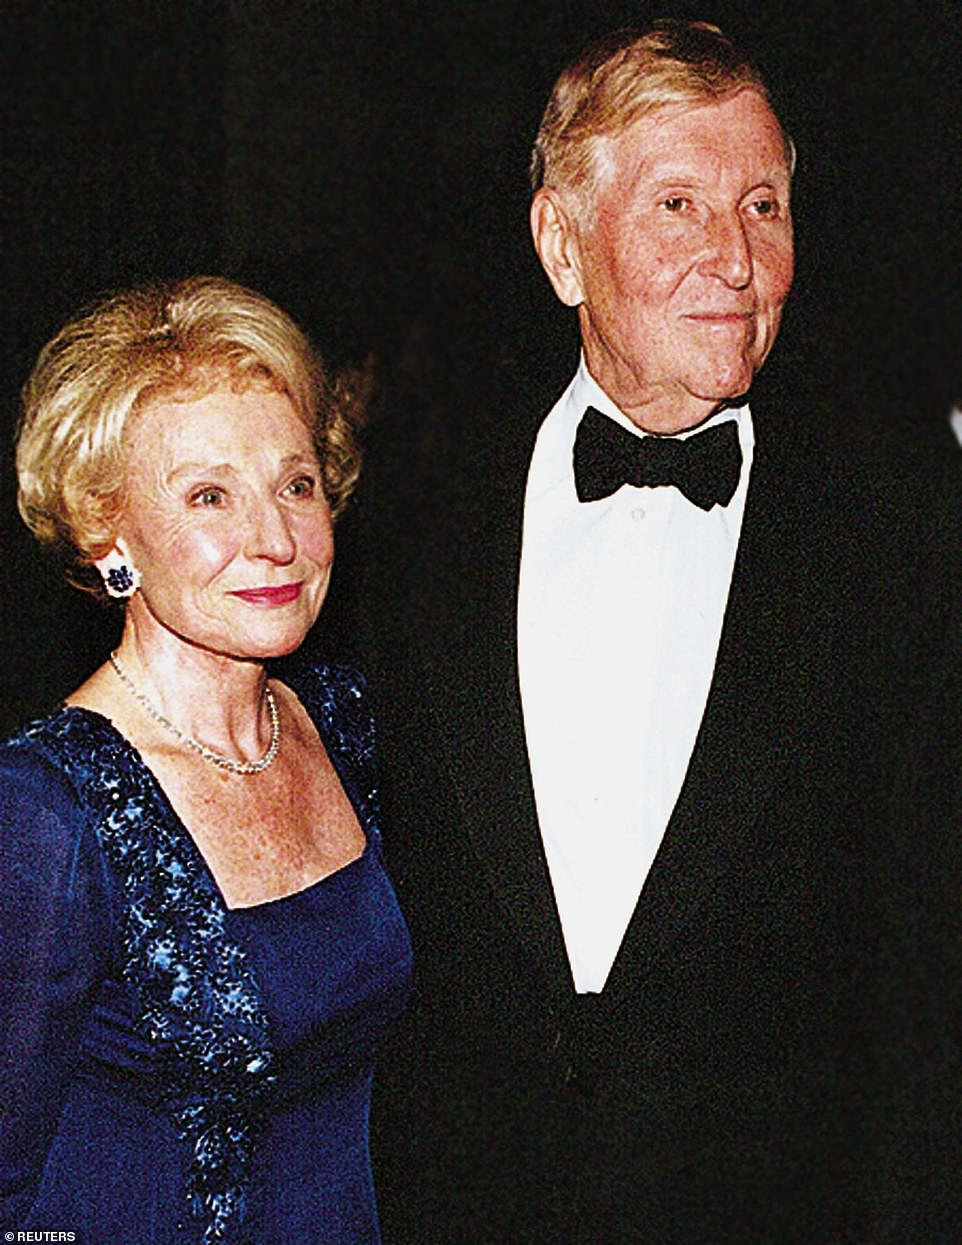 Sumner Redstone is seen in 1998 with his first wife Phyllis. She filed for divorce after 52 years of marriage and sought $3 billion according to her attorney